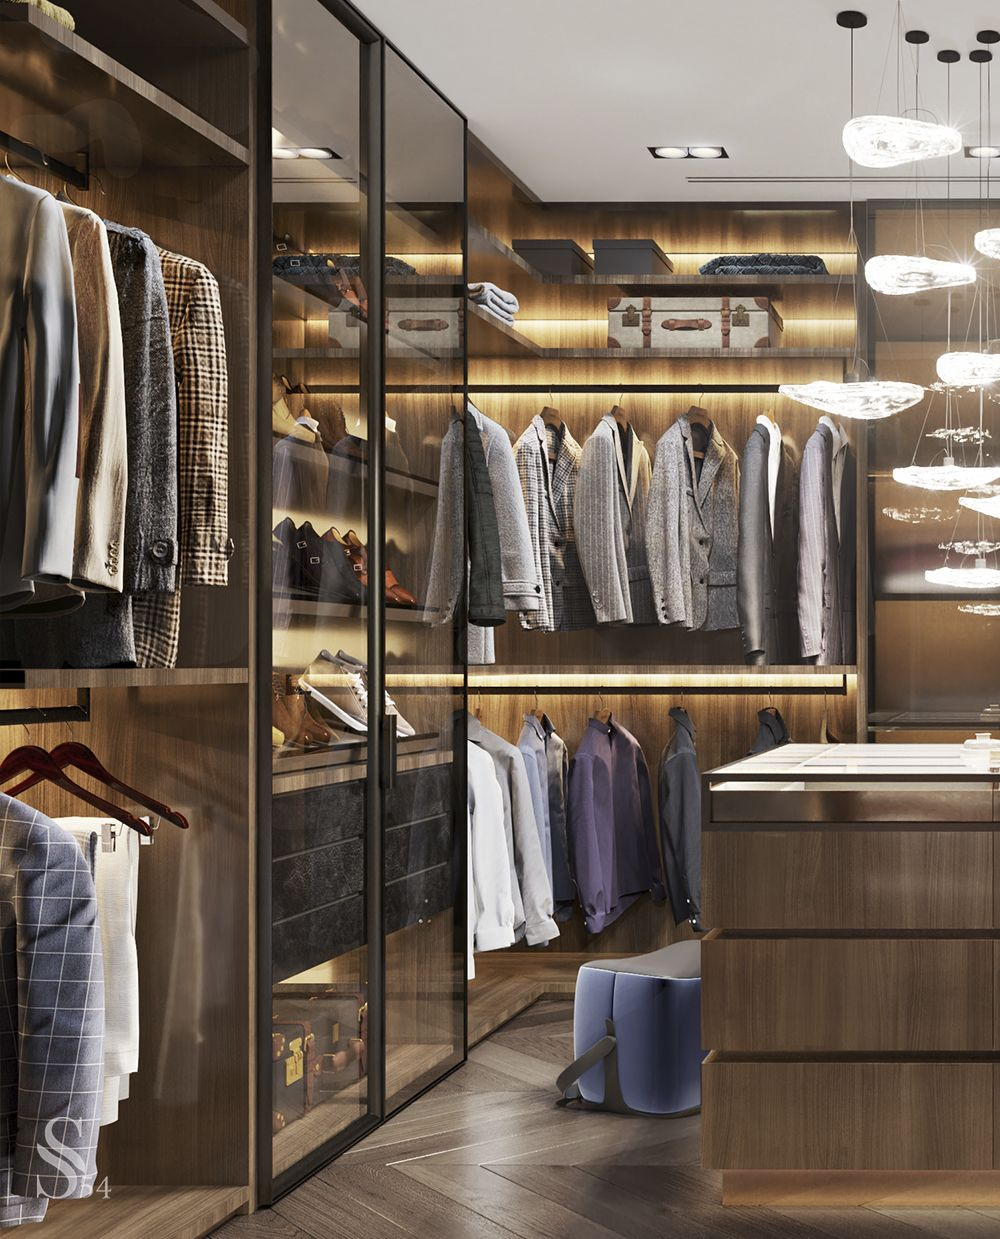 The Molteni & C brutal master wardrobe with a functional